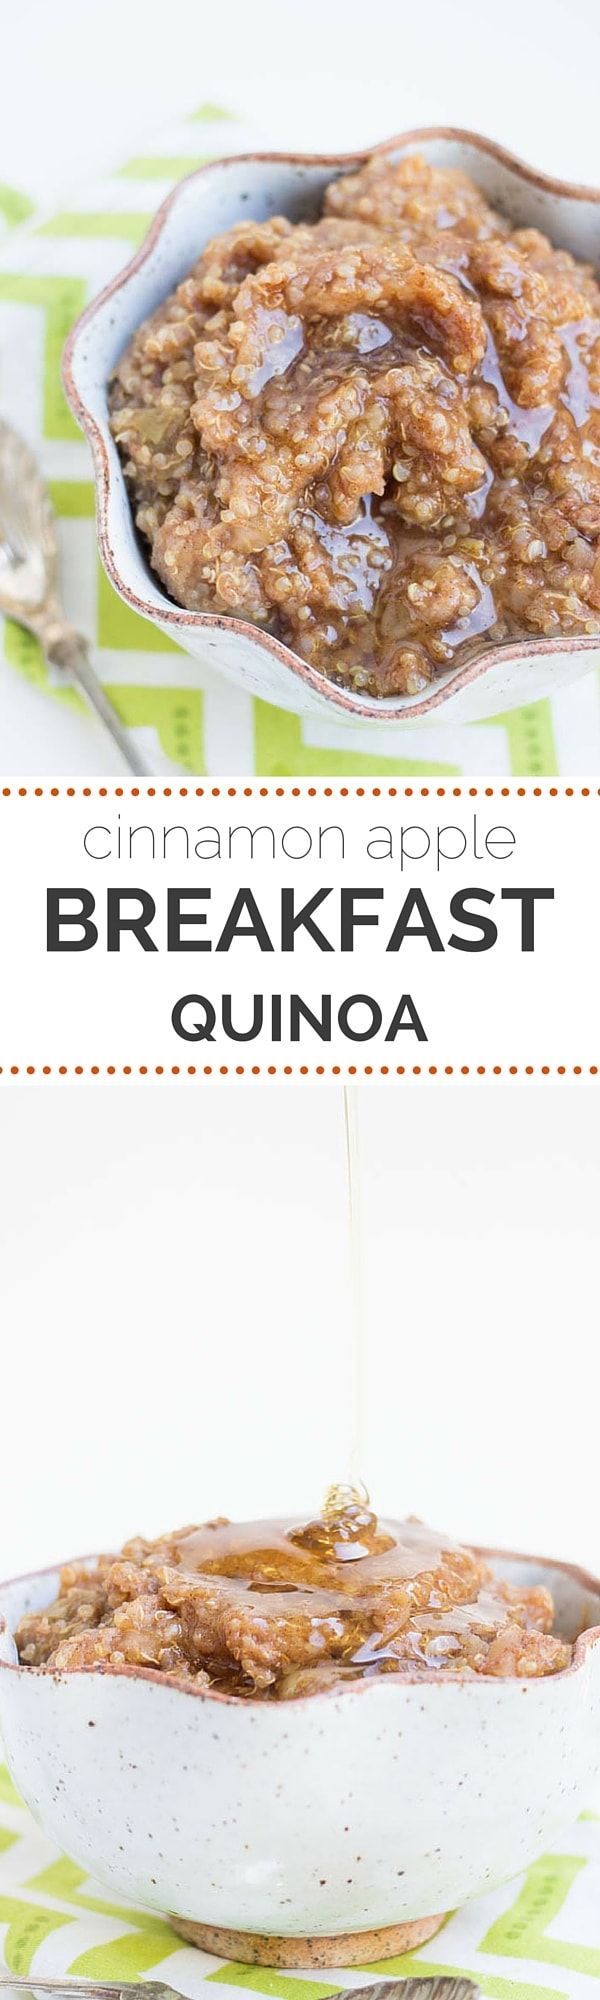 Cinnamon Apple Breakfast Quinoa - healthy & gluten-free This SEASONAL…